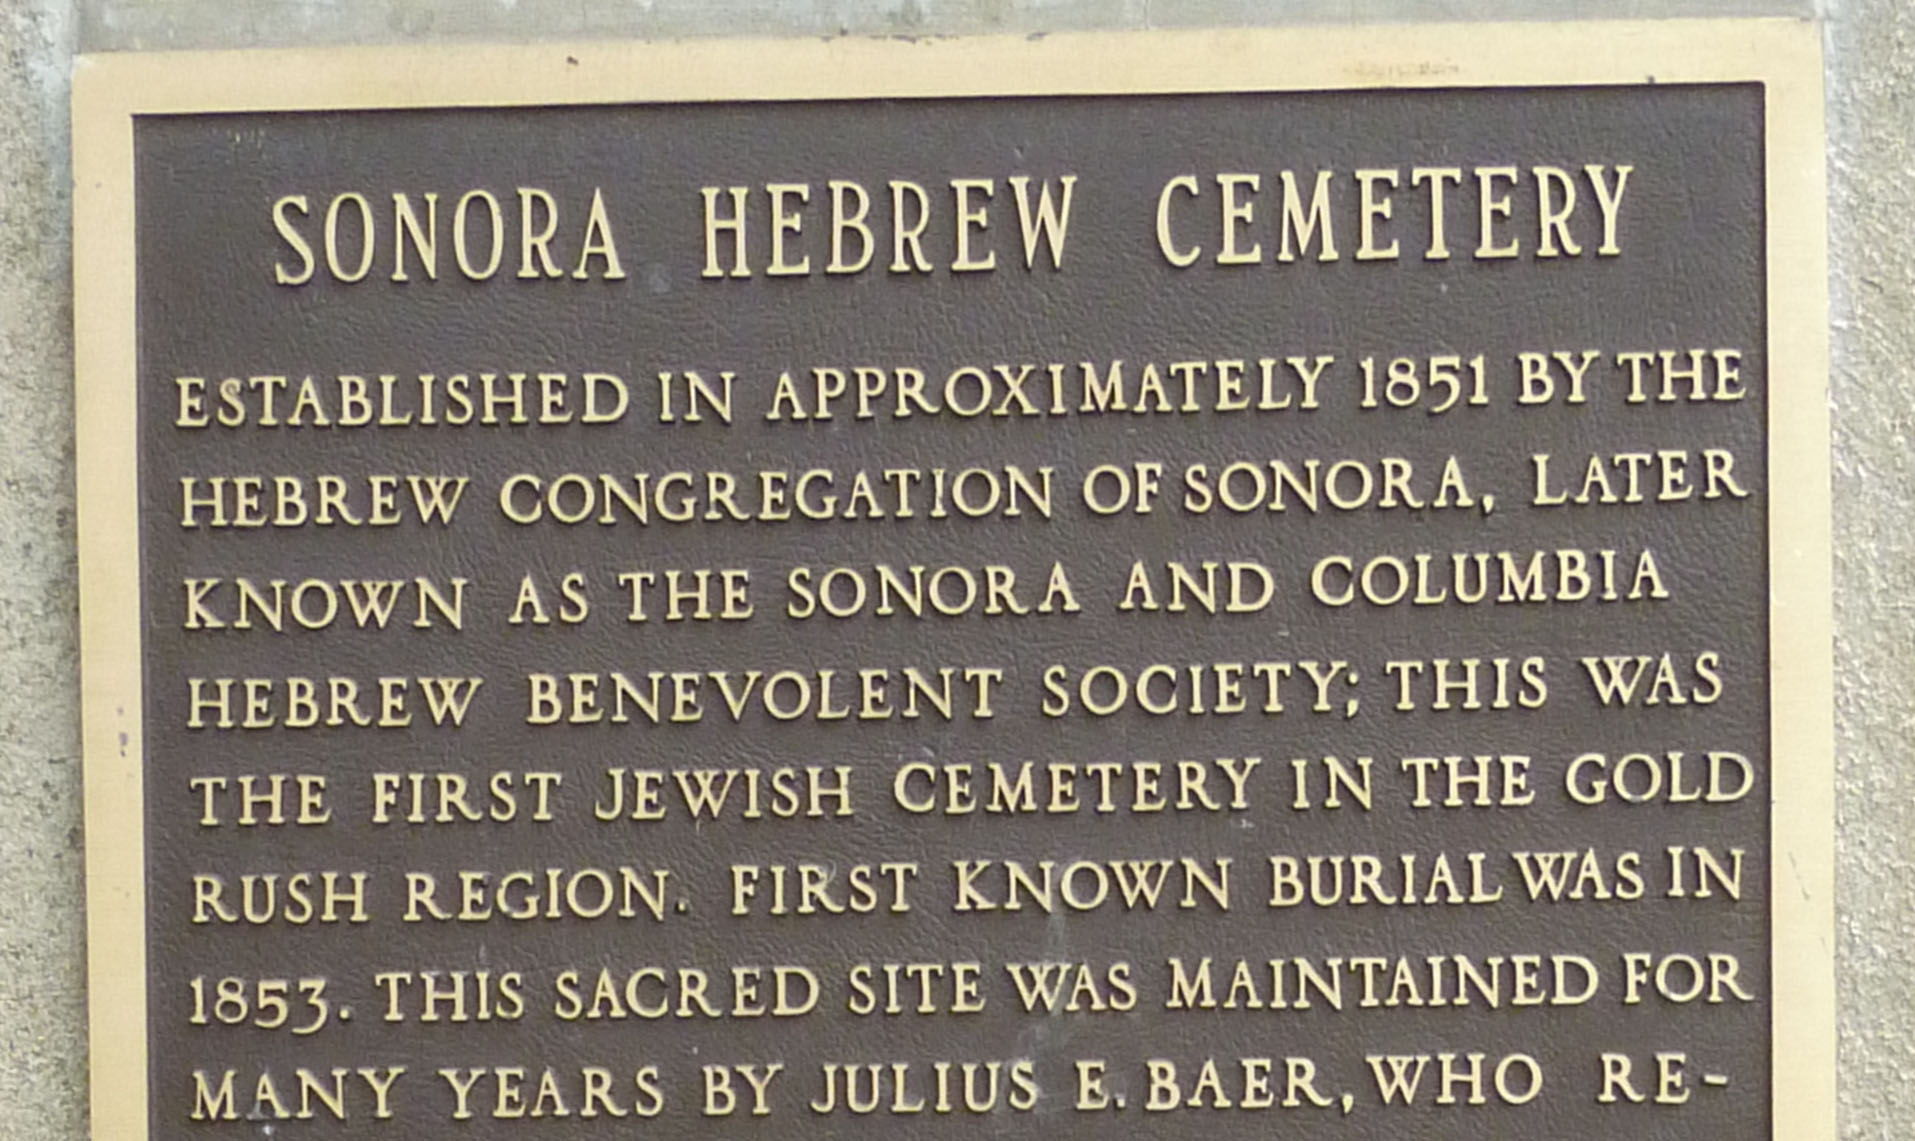 """the plaque reads: """"established in approximately 1851 by the Hebrew Congregation of Sonora, later known as the Sonora and Columbia Hebrew Benevolent Society; this was the first Jewish cemetery in the Gold Rush region."""""""